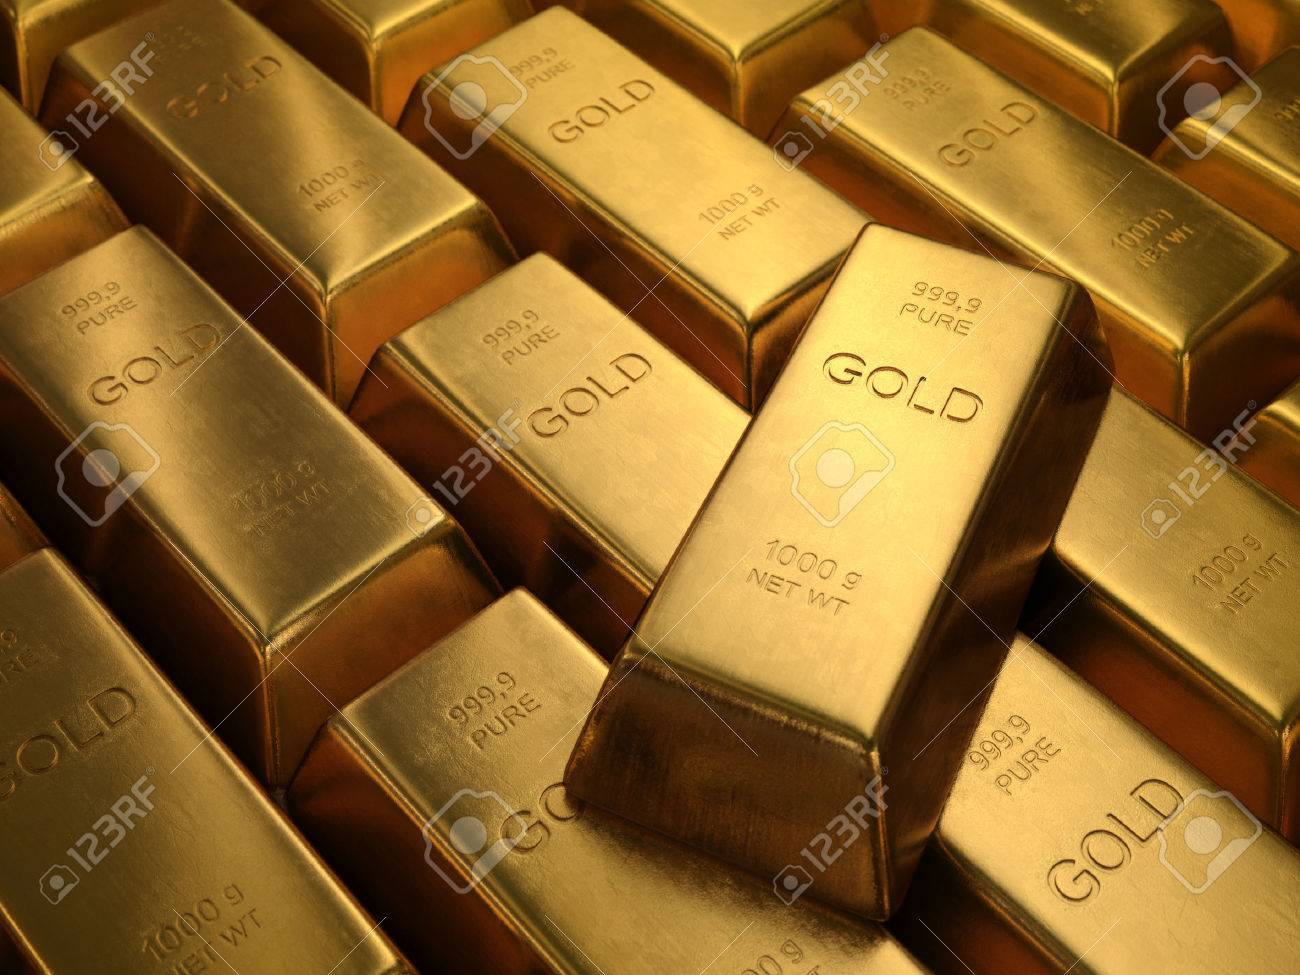 Gold Bars 1000 grams. Depth of field on the gold word. - 33263786